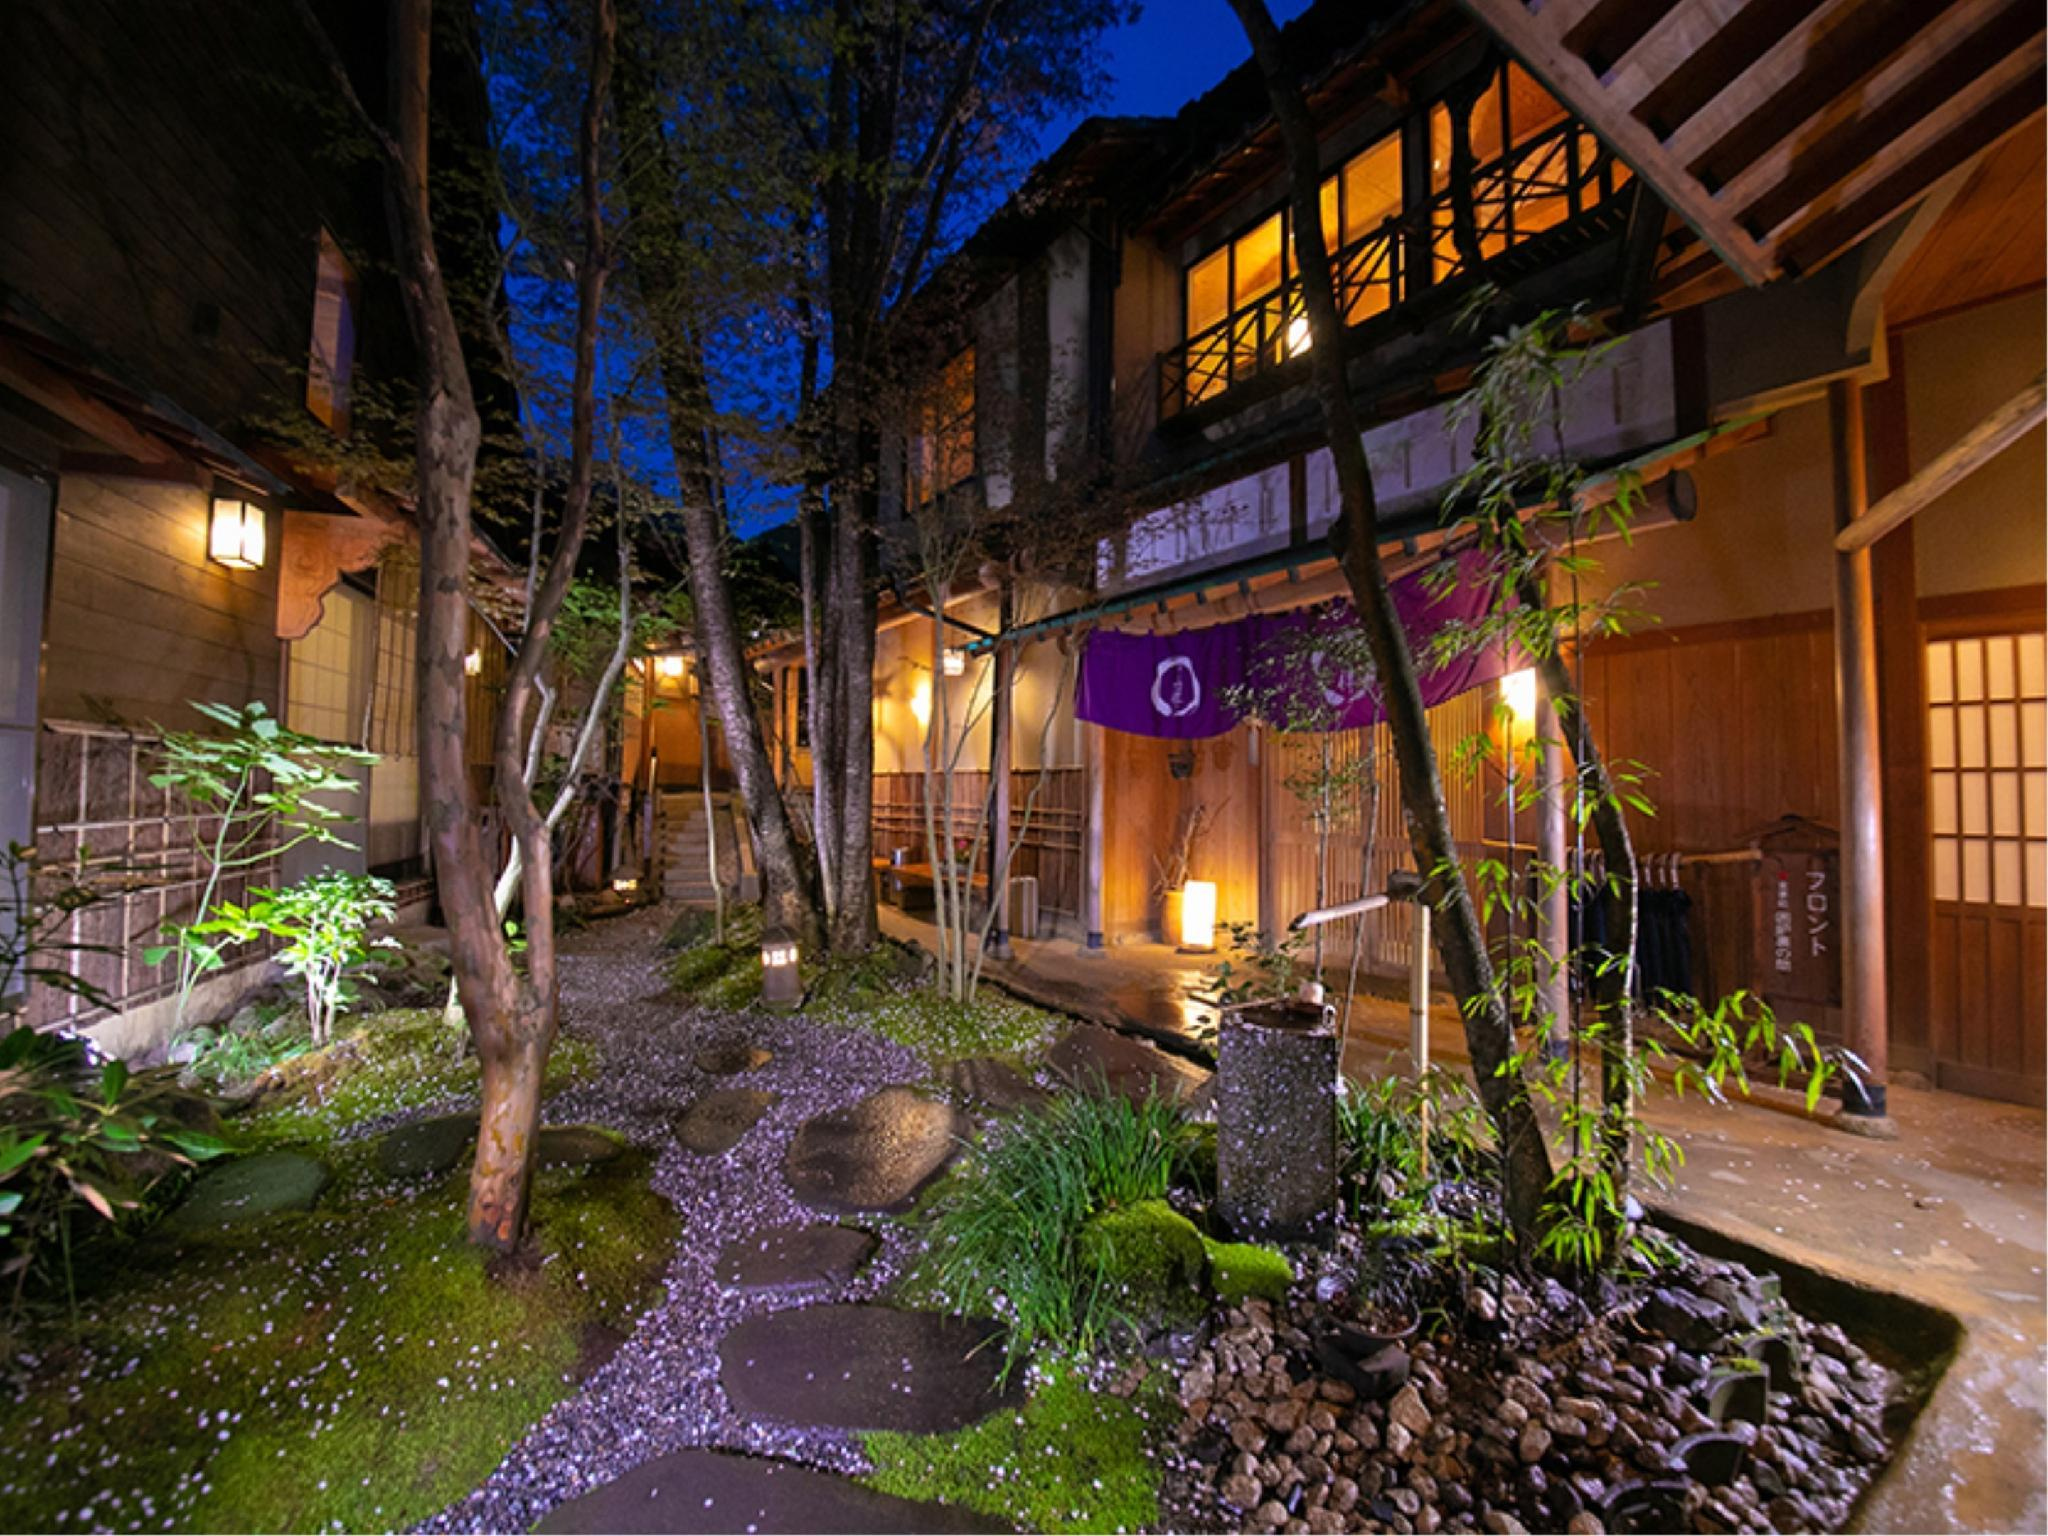 和室|10畳 (Detached 1-Story Japanese-style Room with Open-air Bath)